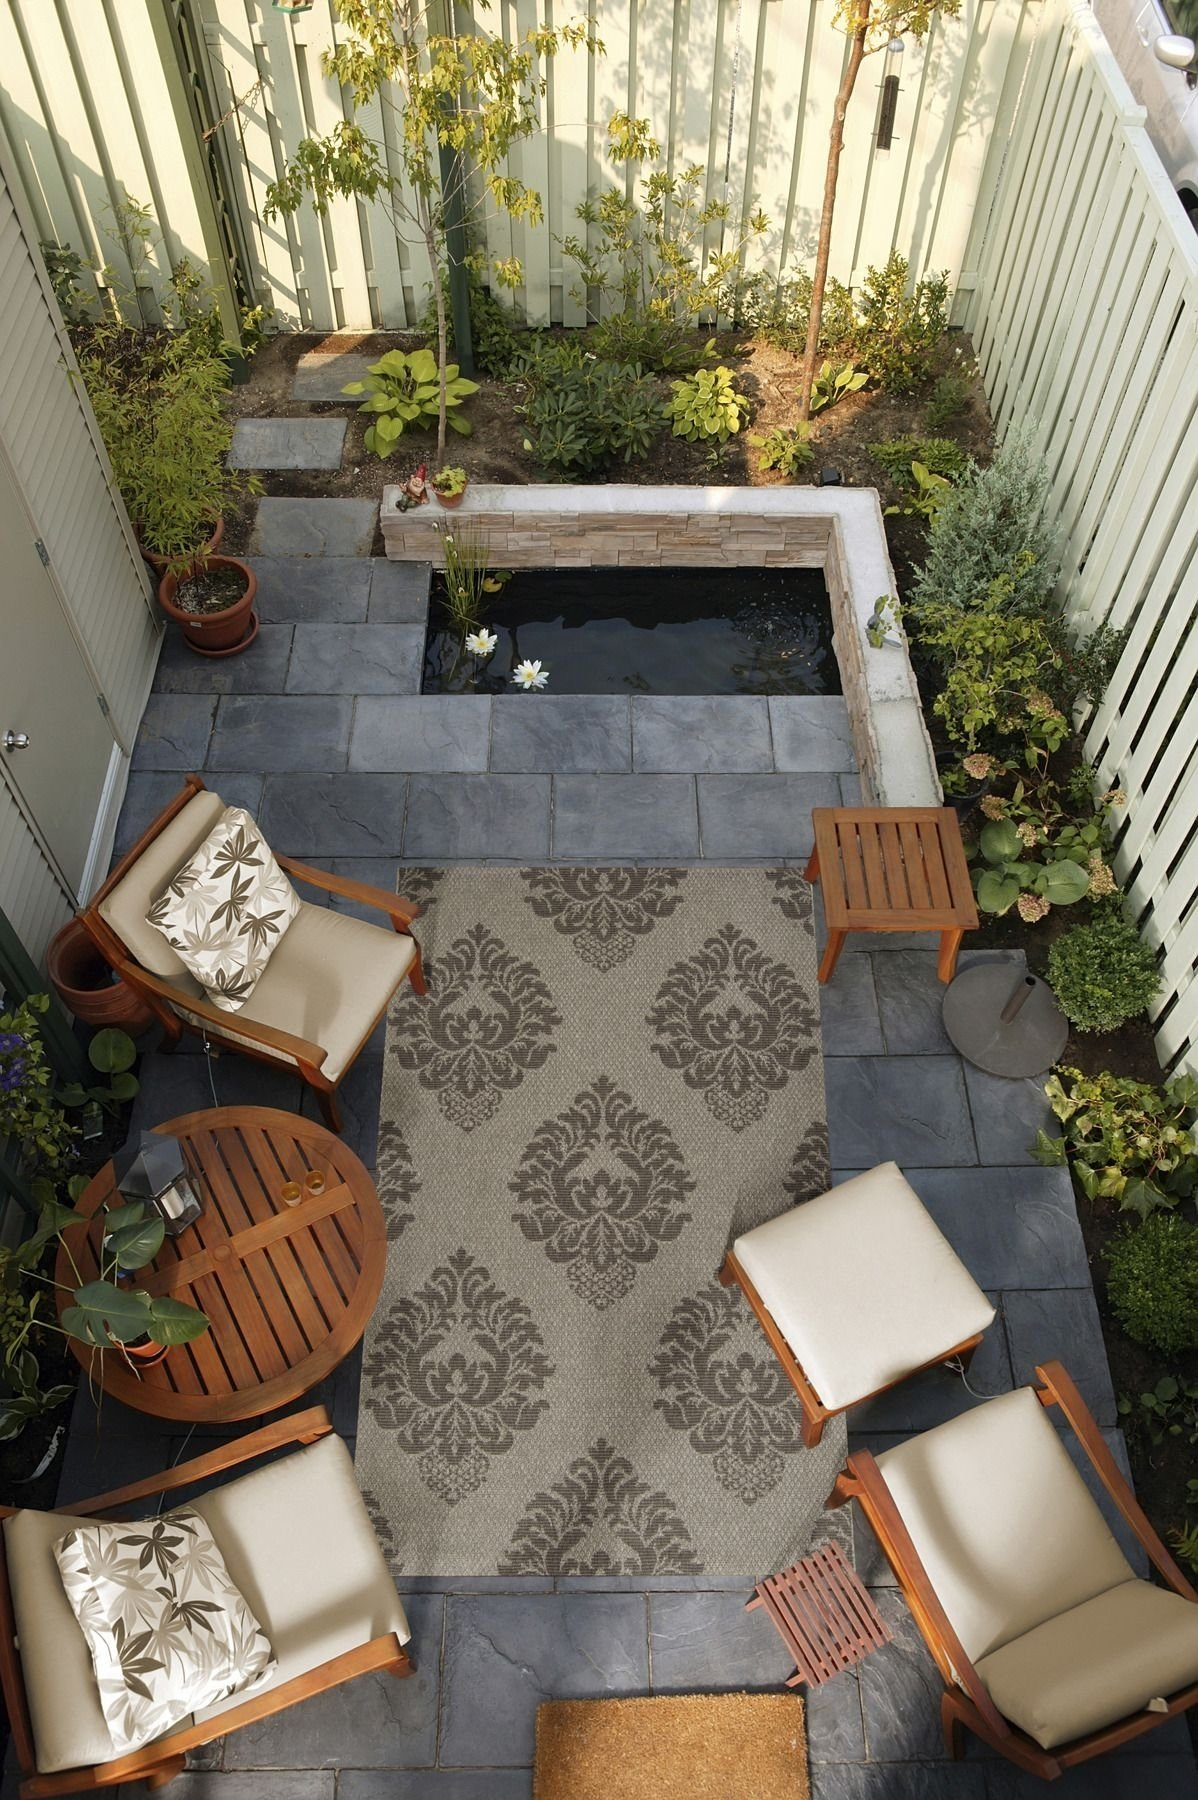 10 Perfect Outdoor Patio Ideas For Small Spaces small outdoor space brought togethera surya rug from the 2020